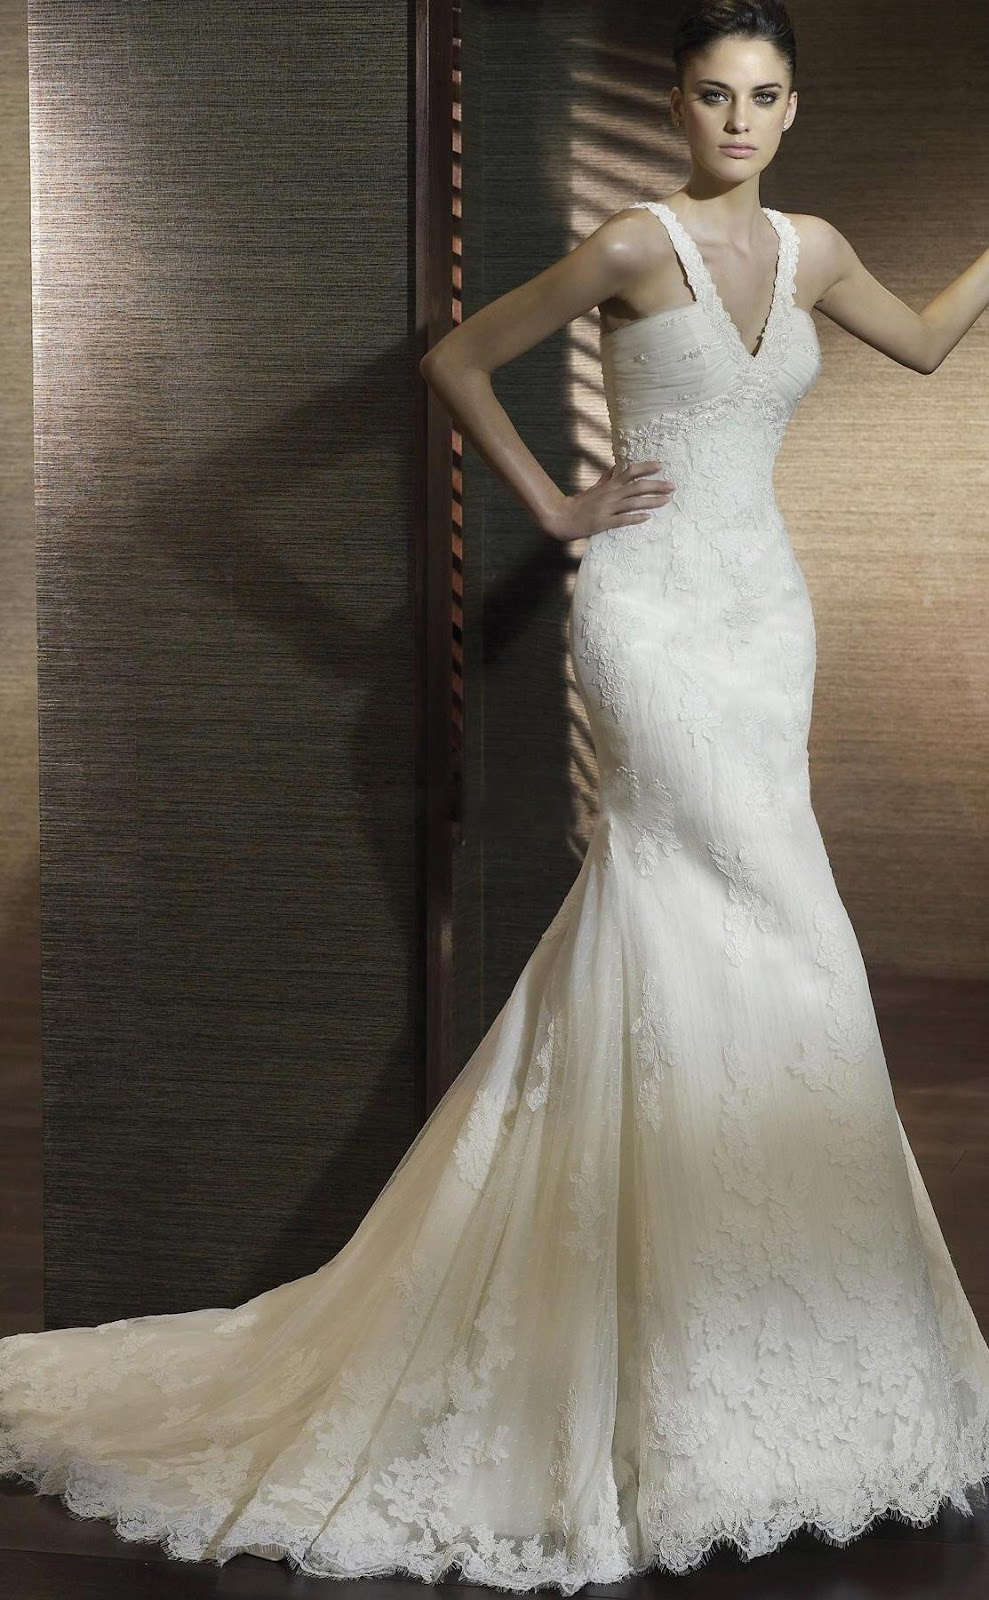 Lace Overlay Sweetheart Dropped Waist Luxury Wedding Dresses uw047.